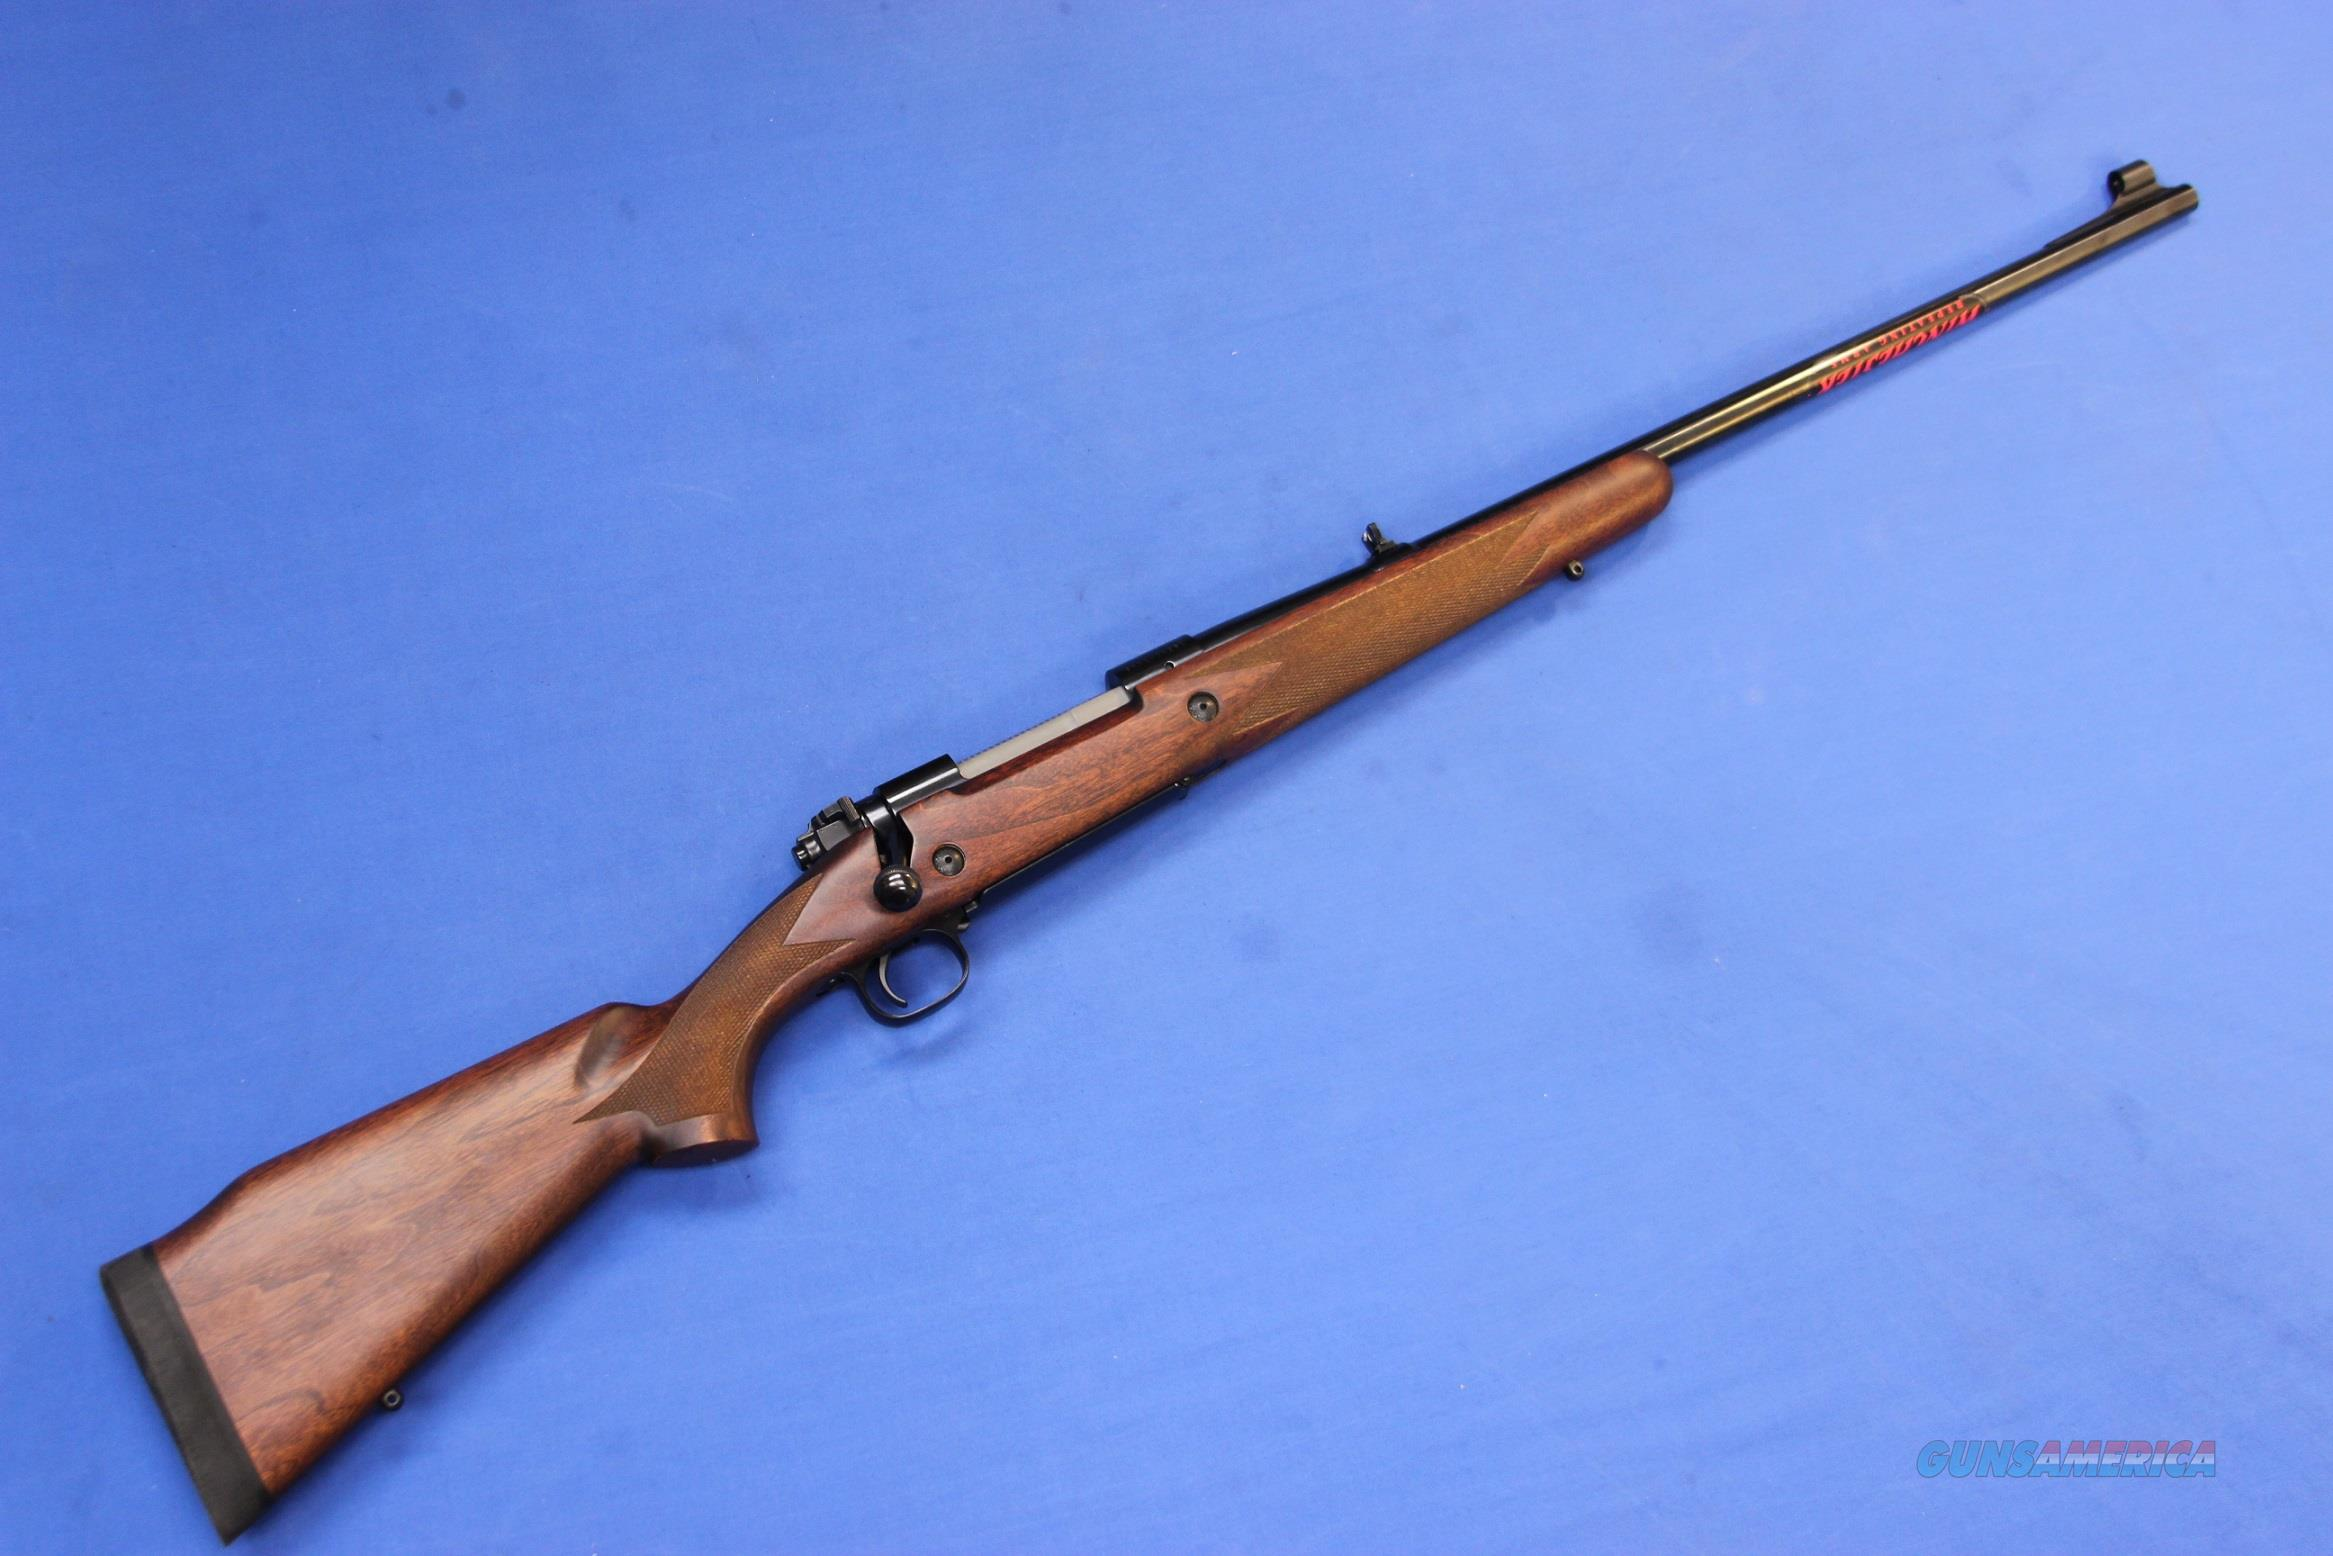 Current model Winchester Model 70 assembled by FN Viana in Portugal. (Picture courtesy gunsamerica.com).